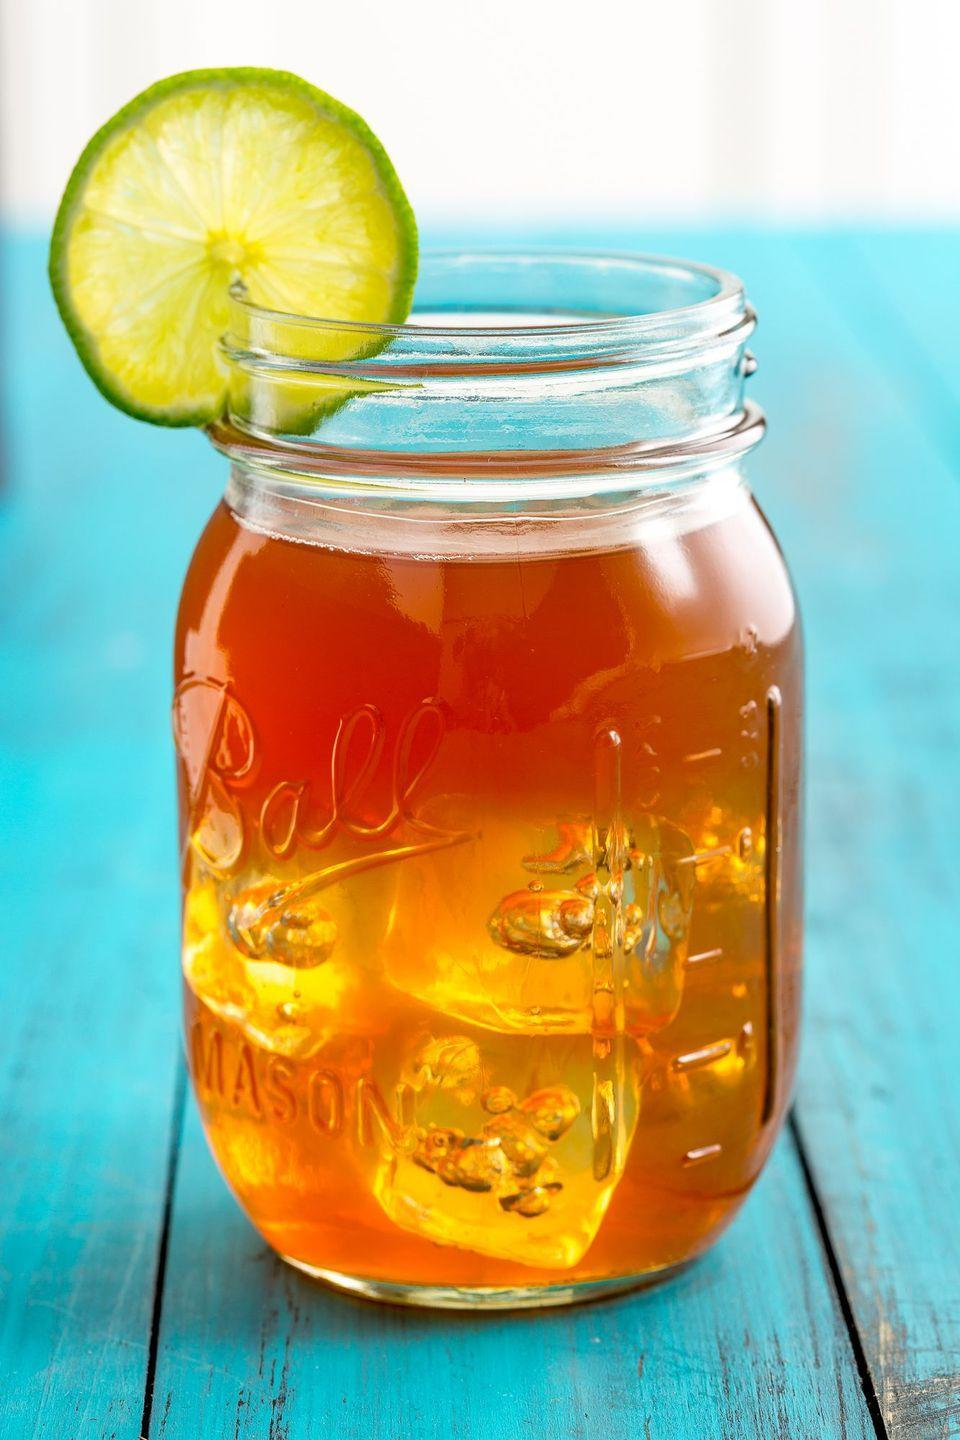 "<p>A classic Arnold Palmer gets a makeover in this summer mocktail. Add a dash grenadine to your lemonade-iced tea mix for an extra sweet kick.</p><p><strong><em>Get the recipe from <a href=""https://www.delish.com/cooking/g3452/easy-twists-on-lemonade/"" rel=""nofollow noopener"" target=""_blank"" data-ylk=""slk:Delish"" class=""link rapid-noclick-resp"">Delish</a>.</em></strong></p>"